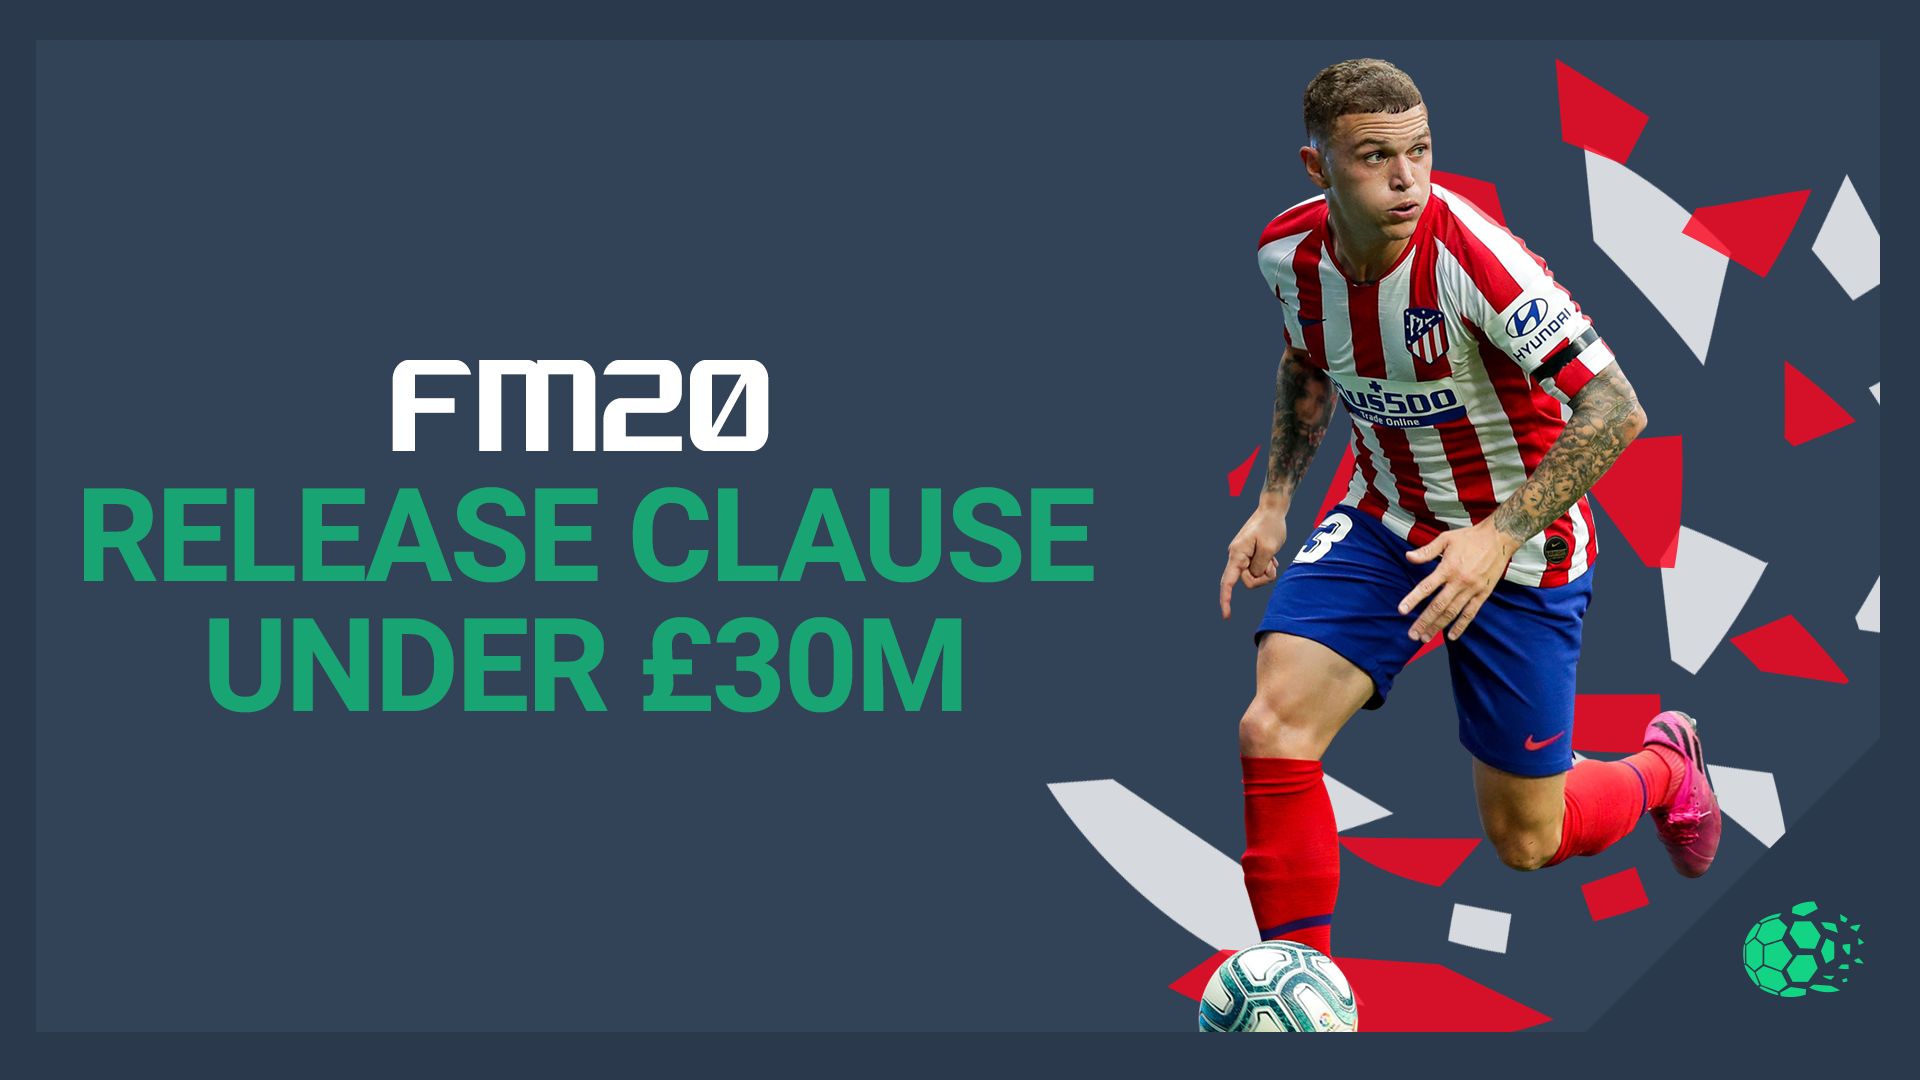 """FM20 Players With Release Clauses under £30 Million"" feature image"